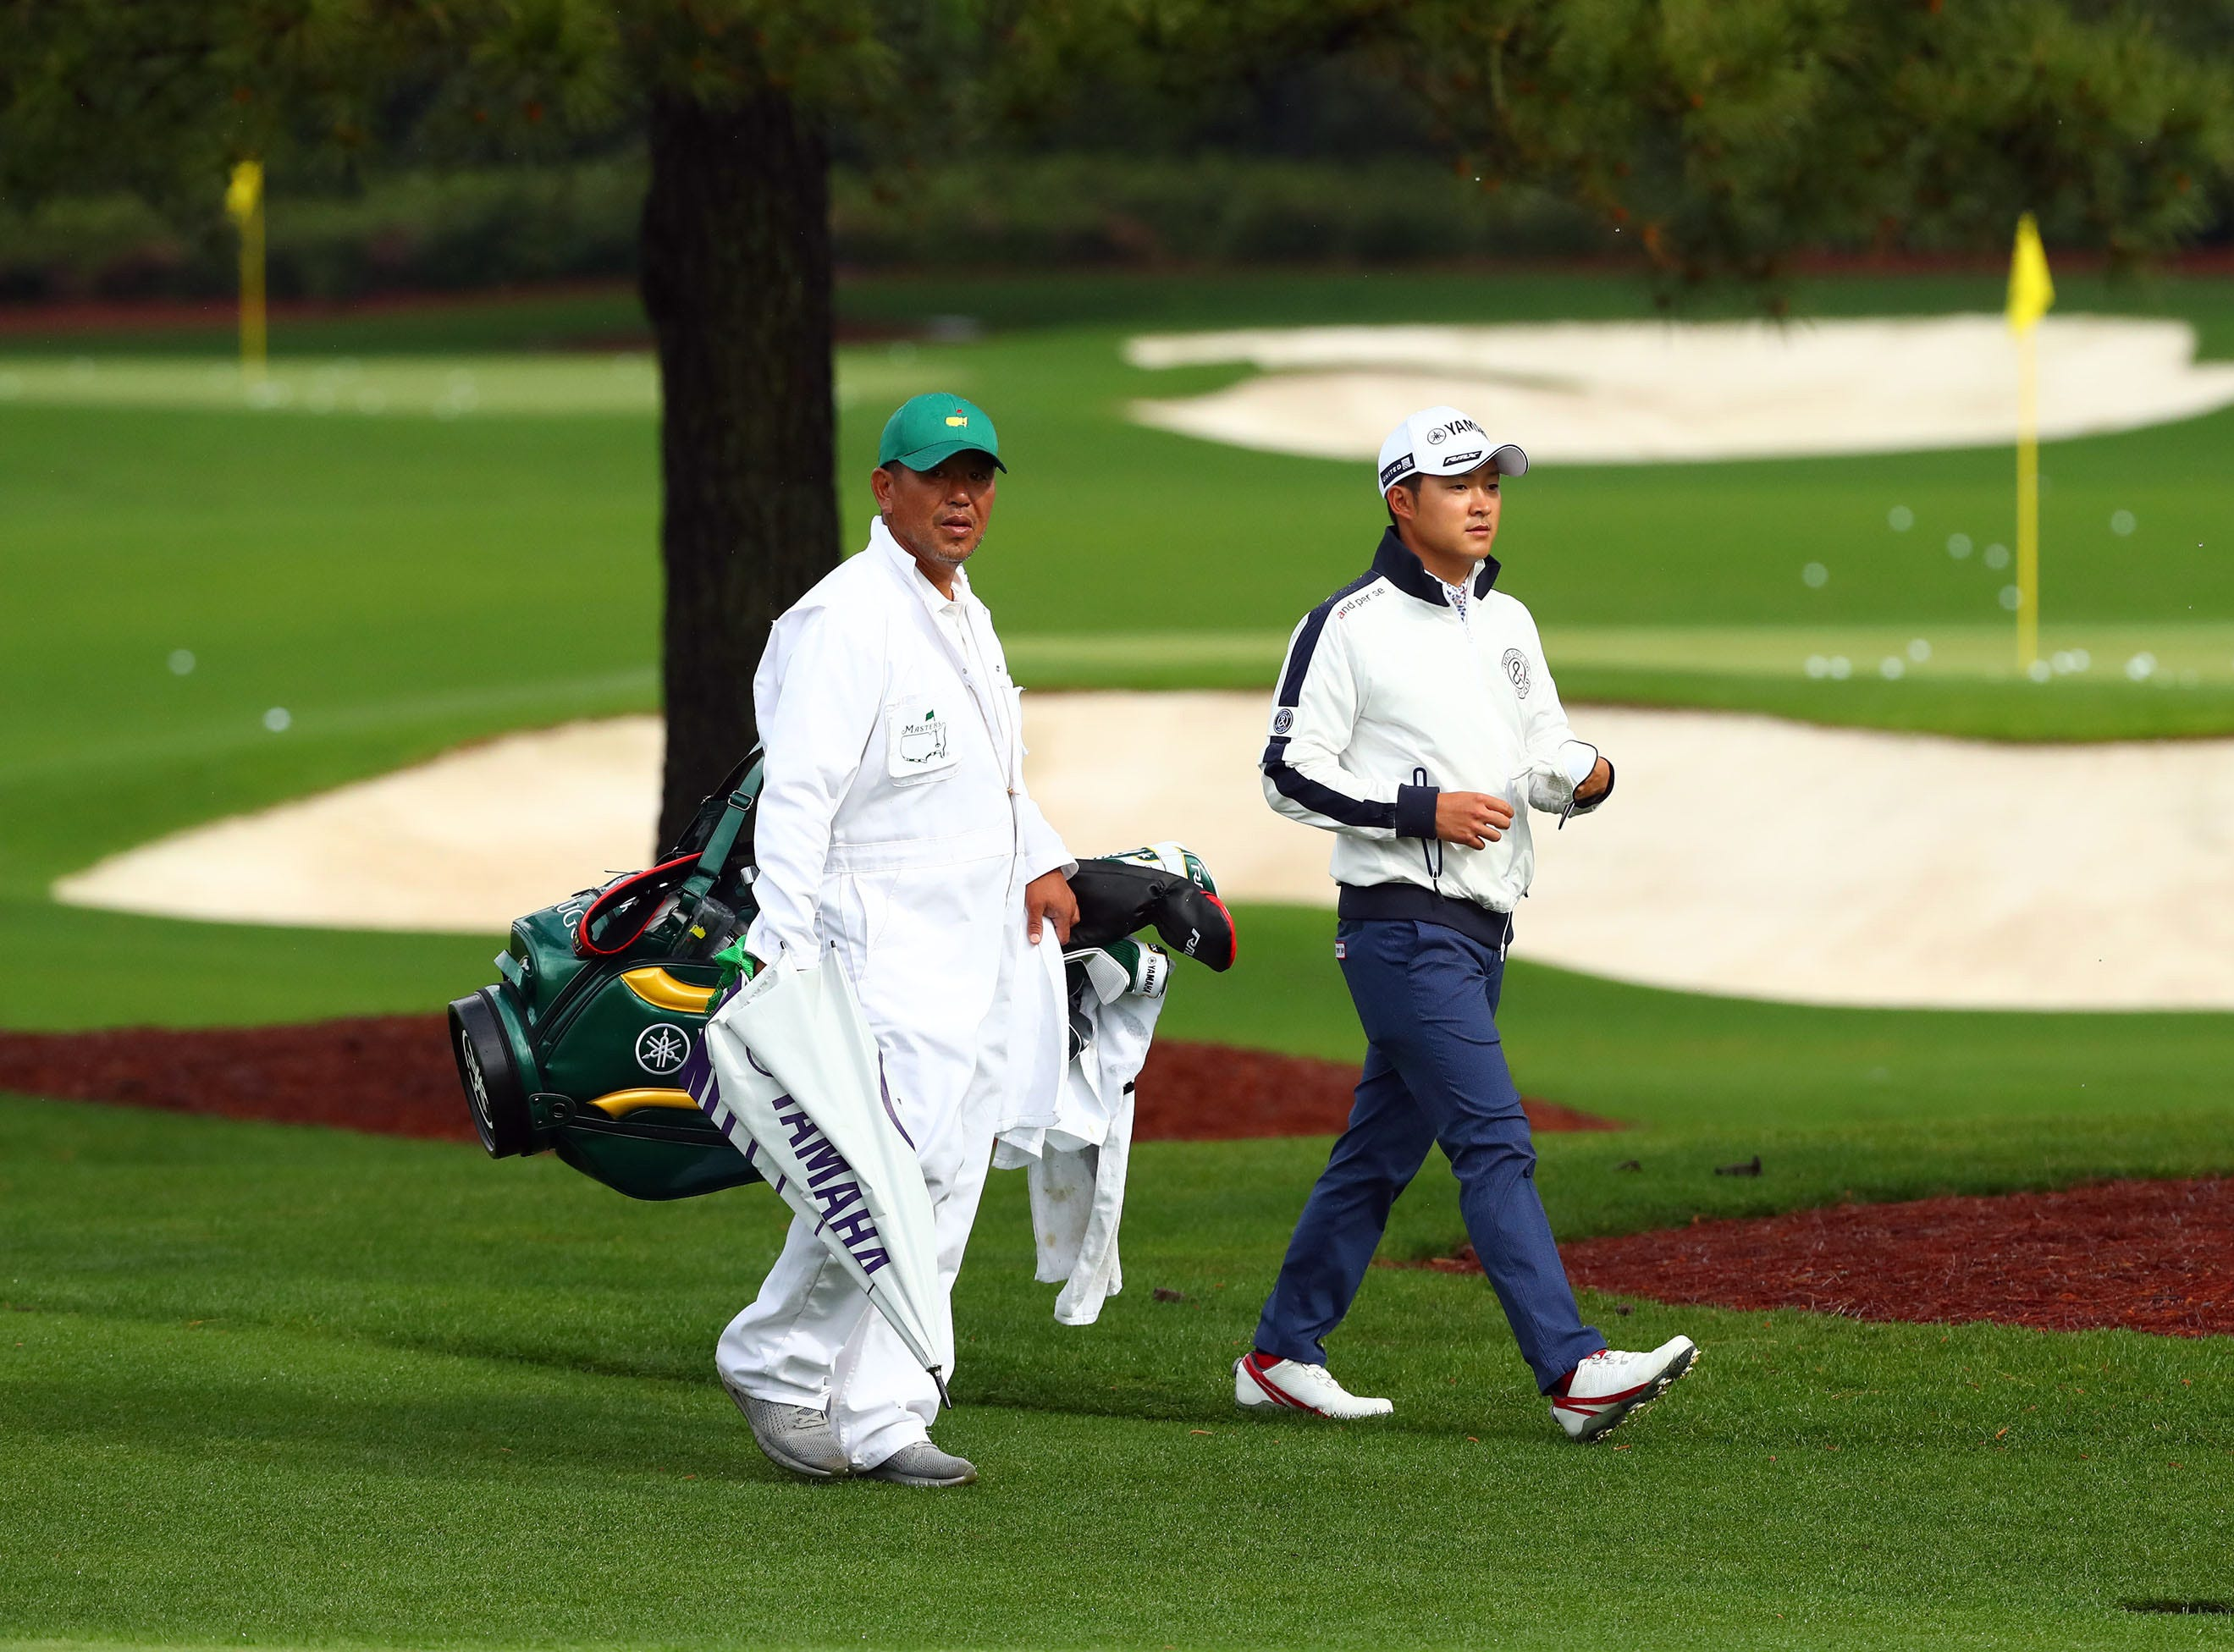 Apr 9, 2019; Augusta, GA, USA; Shugo Imahira of Japan at the practice facility during a practice round for The Masters golf tournament at Augusta National Golf Club. Mandatory Credit: Rob Schumacher-USA TODAY Sports